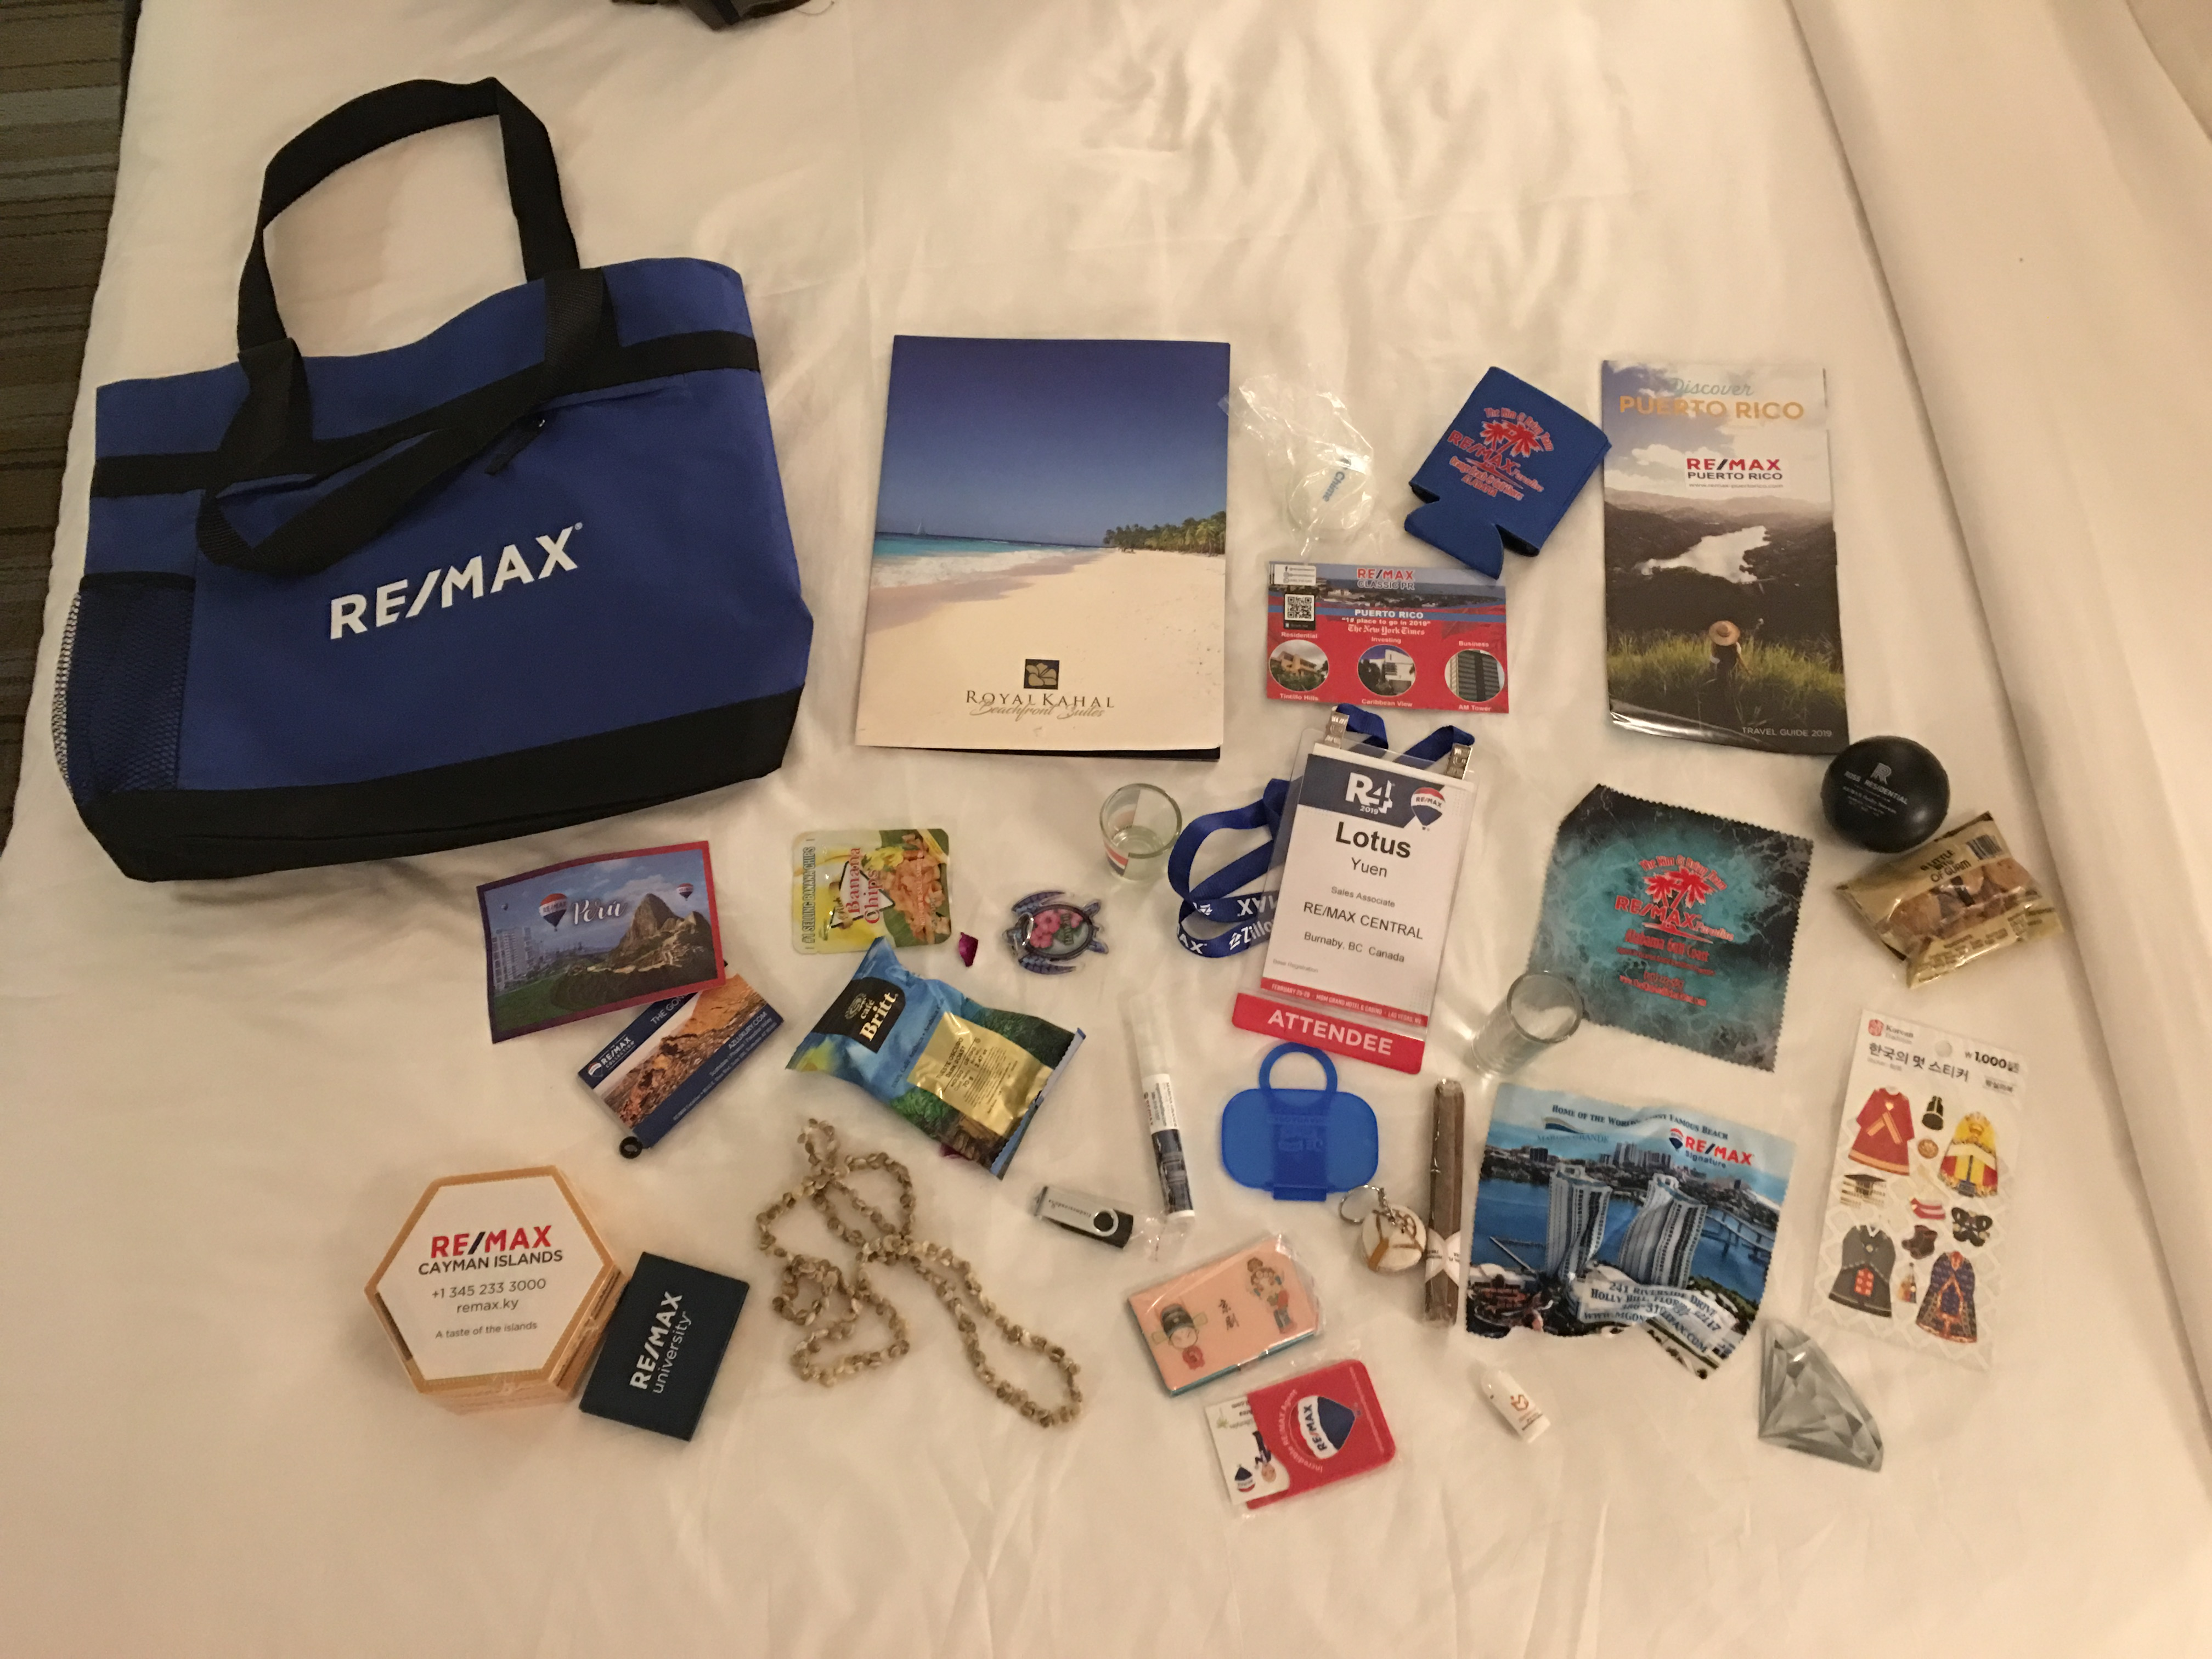 Remax Network Gifts